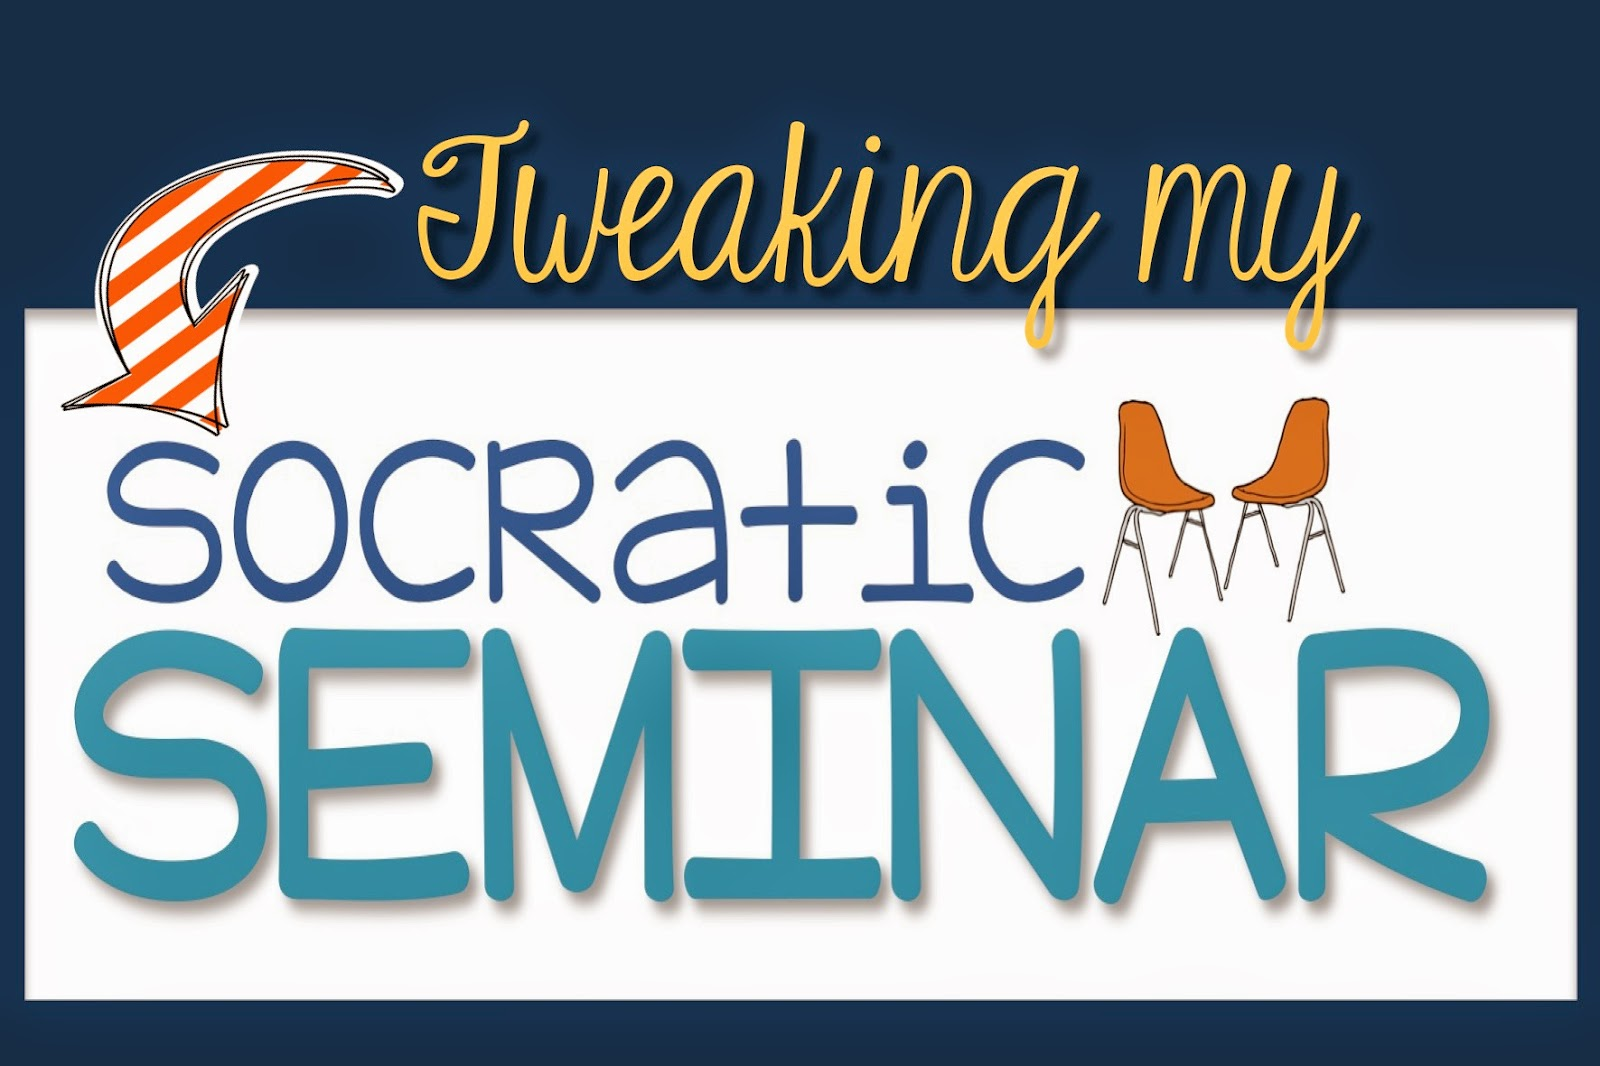 How to Prepare for a Socratic Seminar recommendations